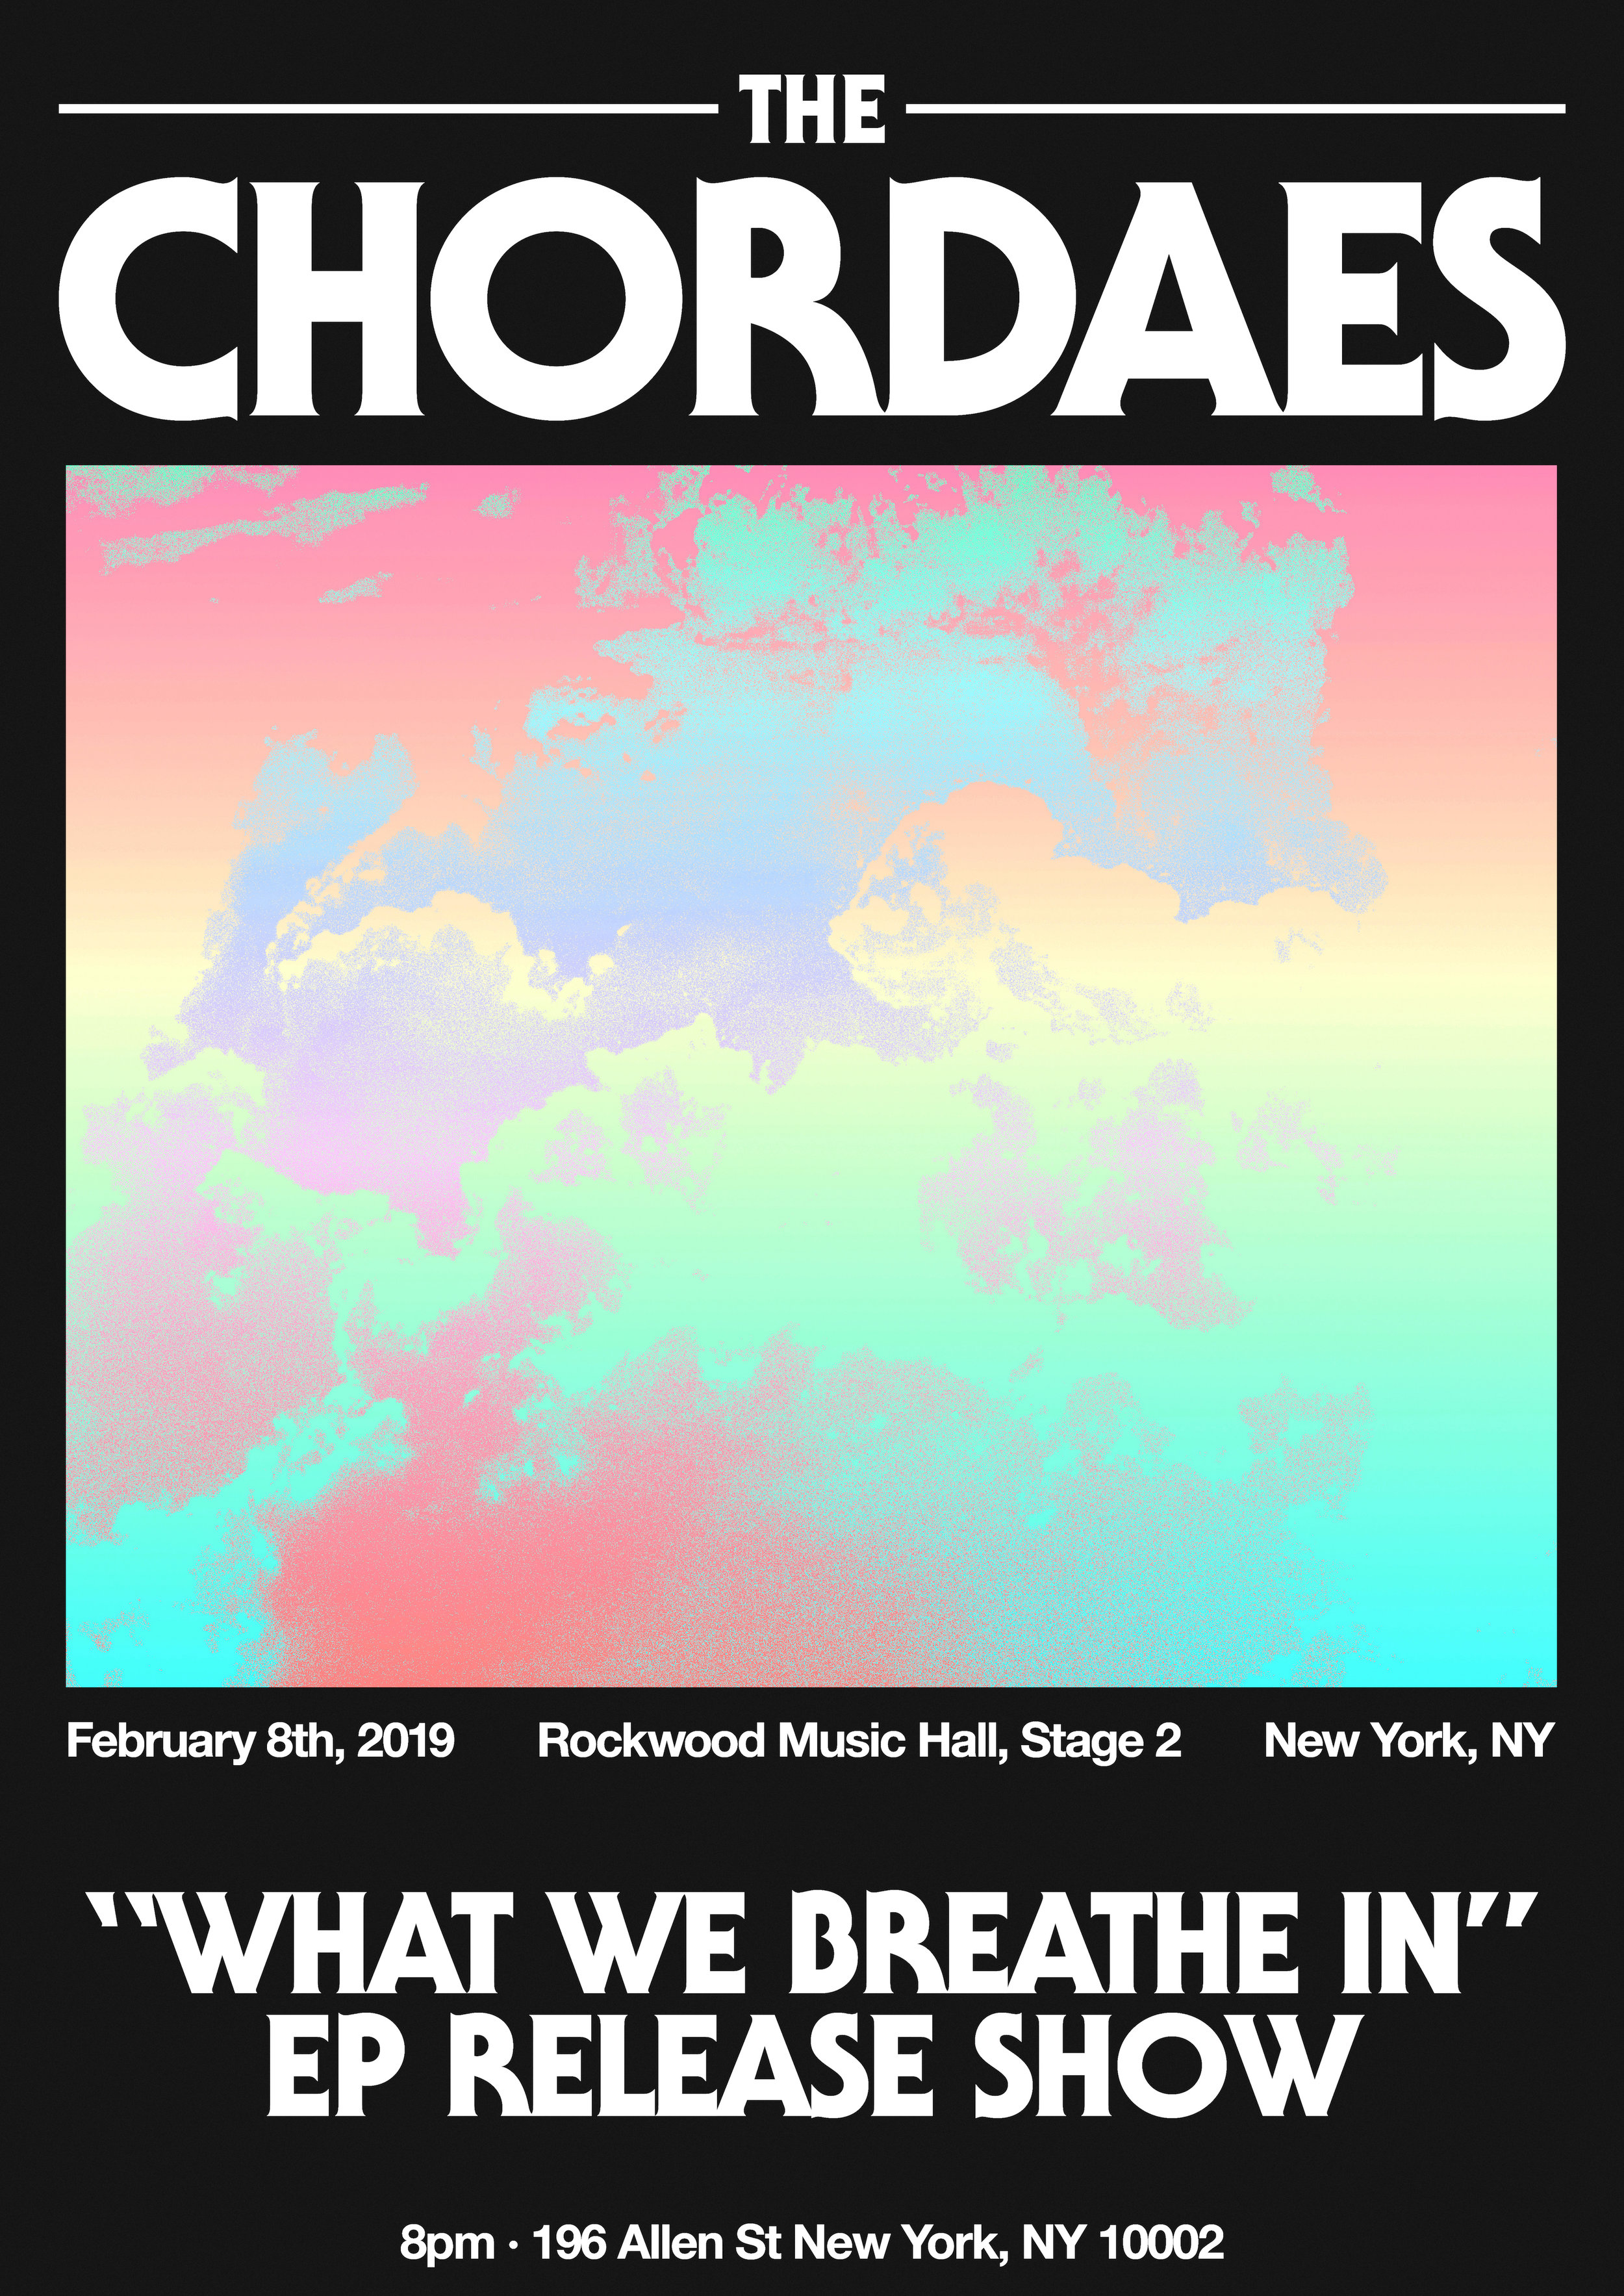 (1/1)  The Chordaes EP Release Show Poster Design